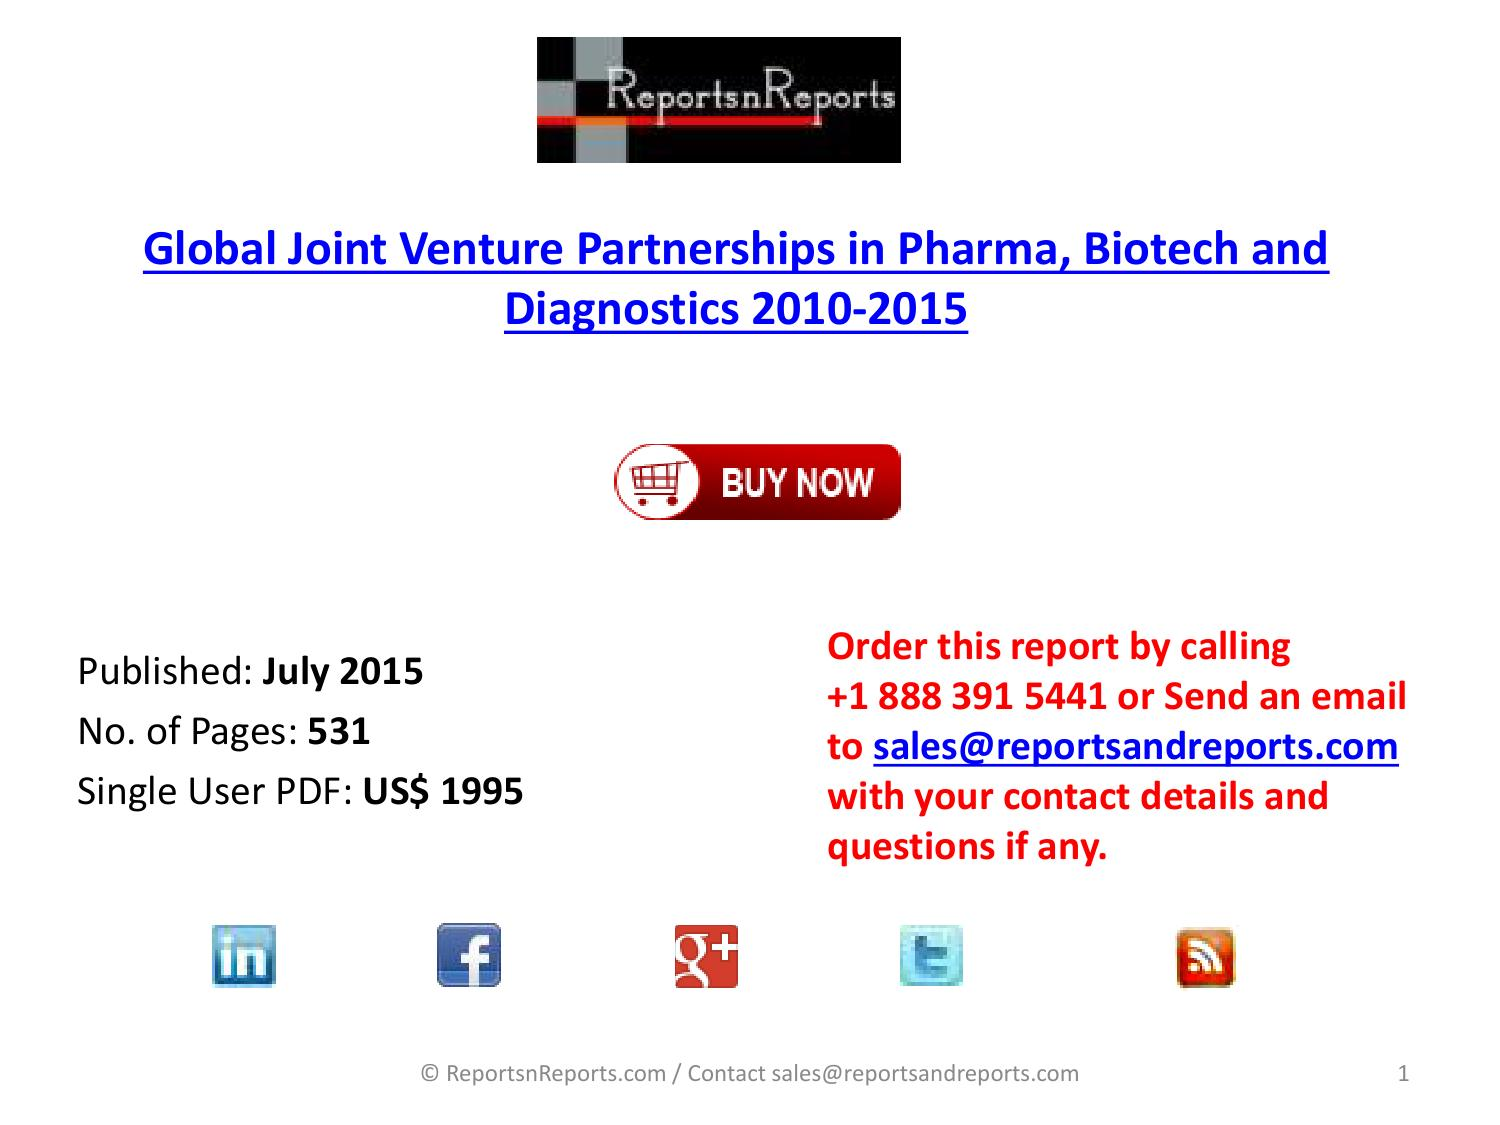 Pharma, Biotech and Diagnostics Market Joint Venture Trends